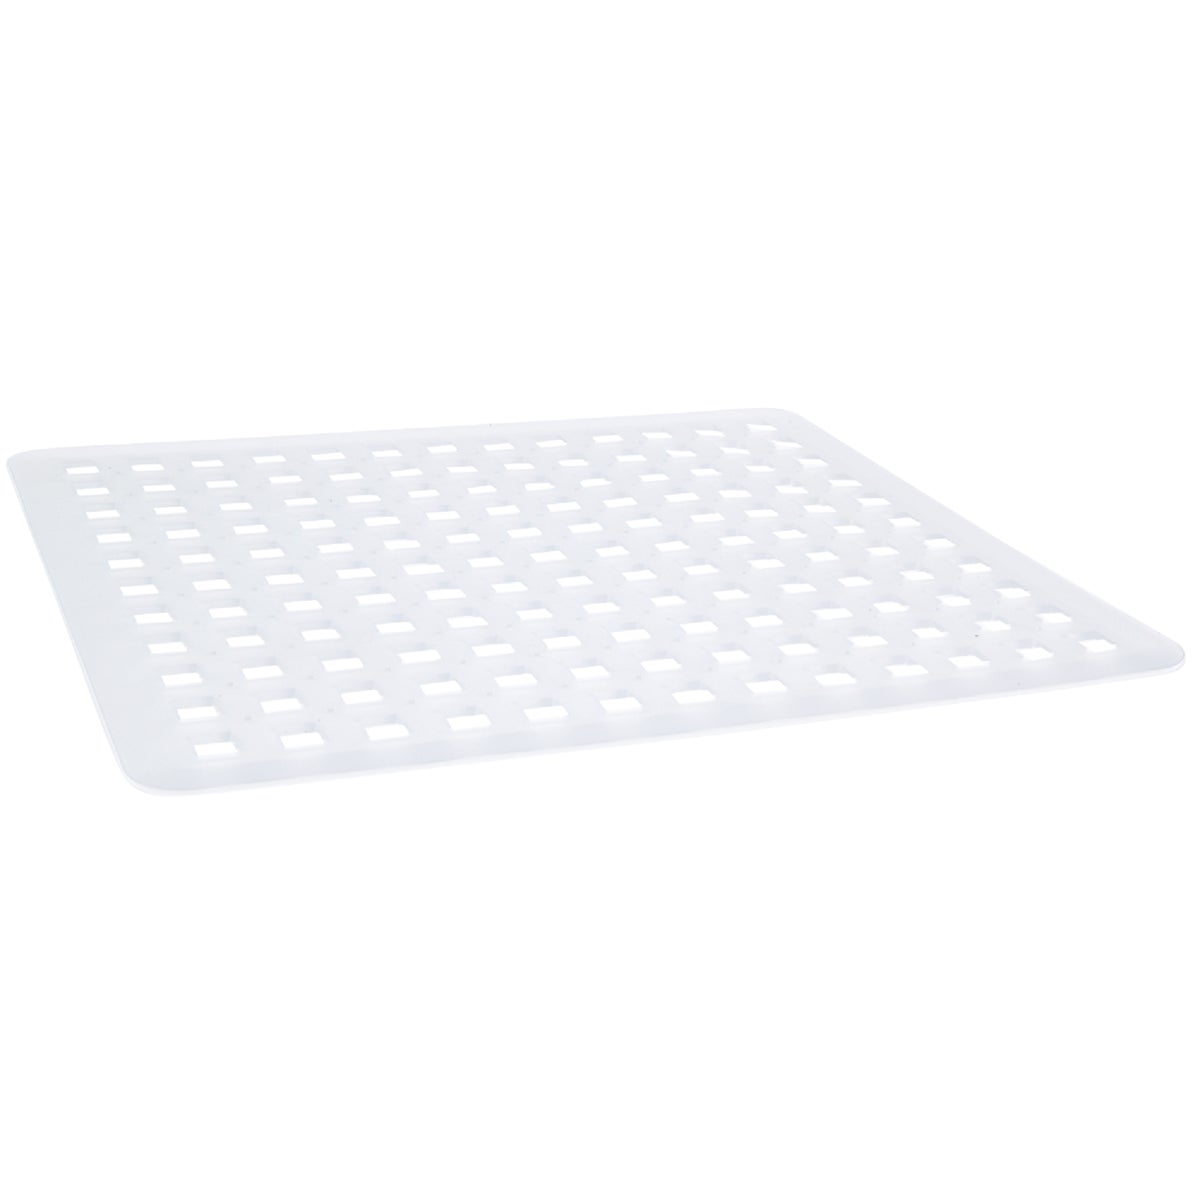 REGULAR CLEAR SINK MAT